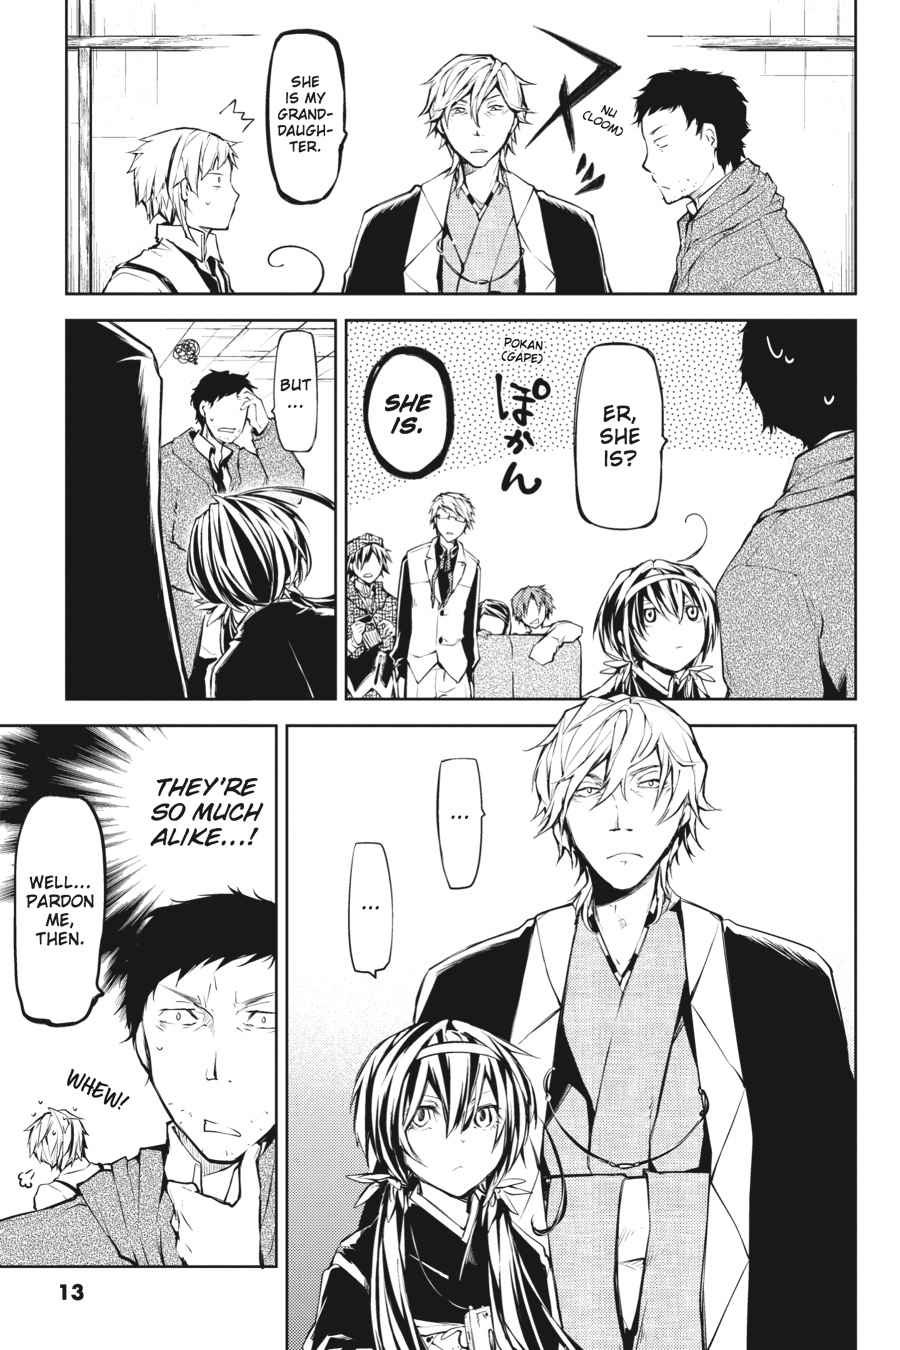 Bungou Stray Dogs Chapter 13 Page 13